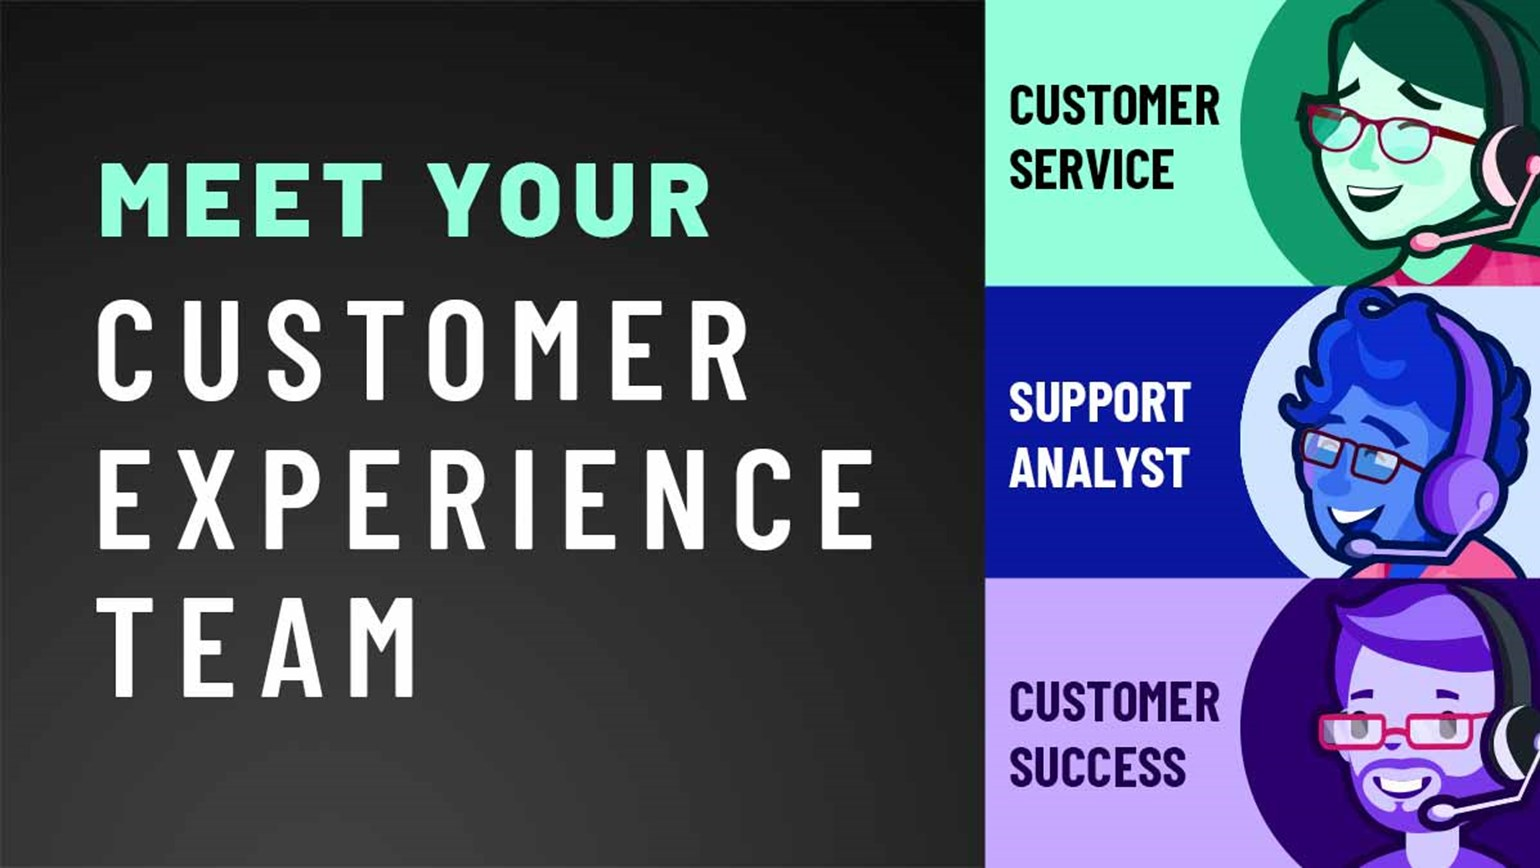 Meet Your Customer Experience Team